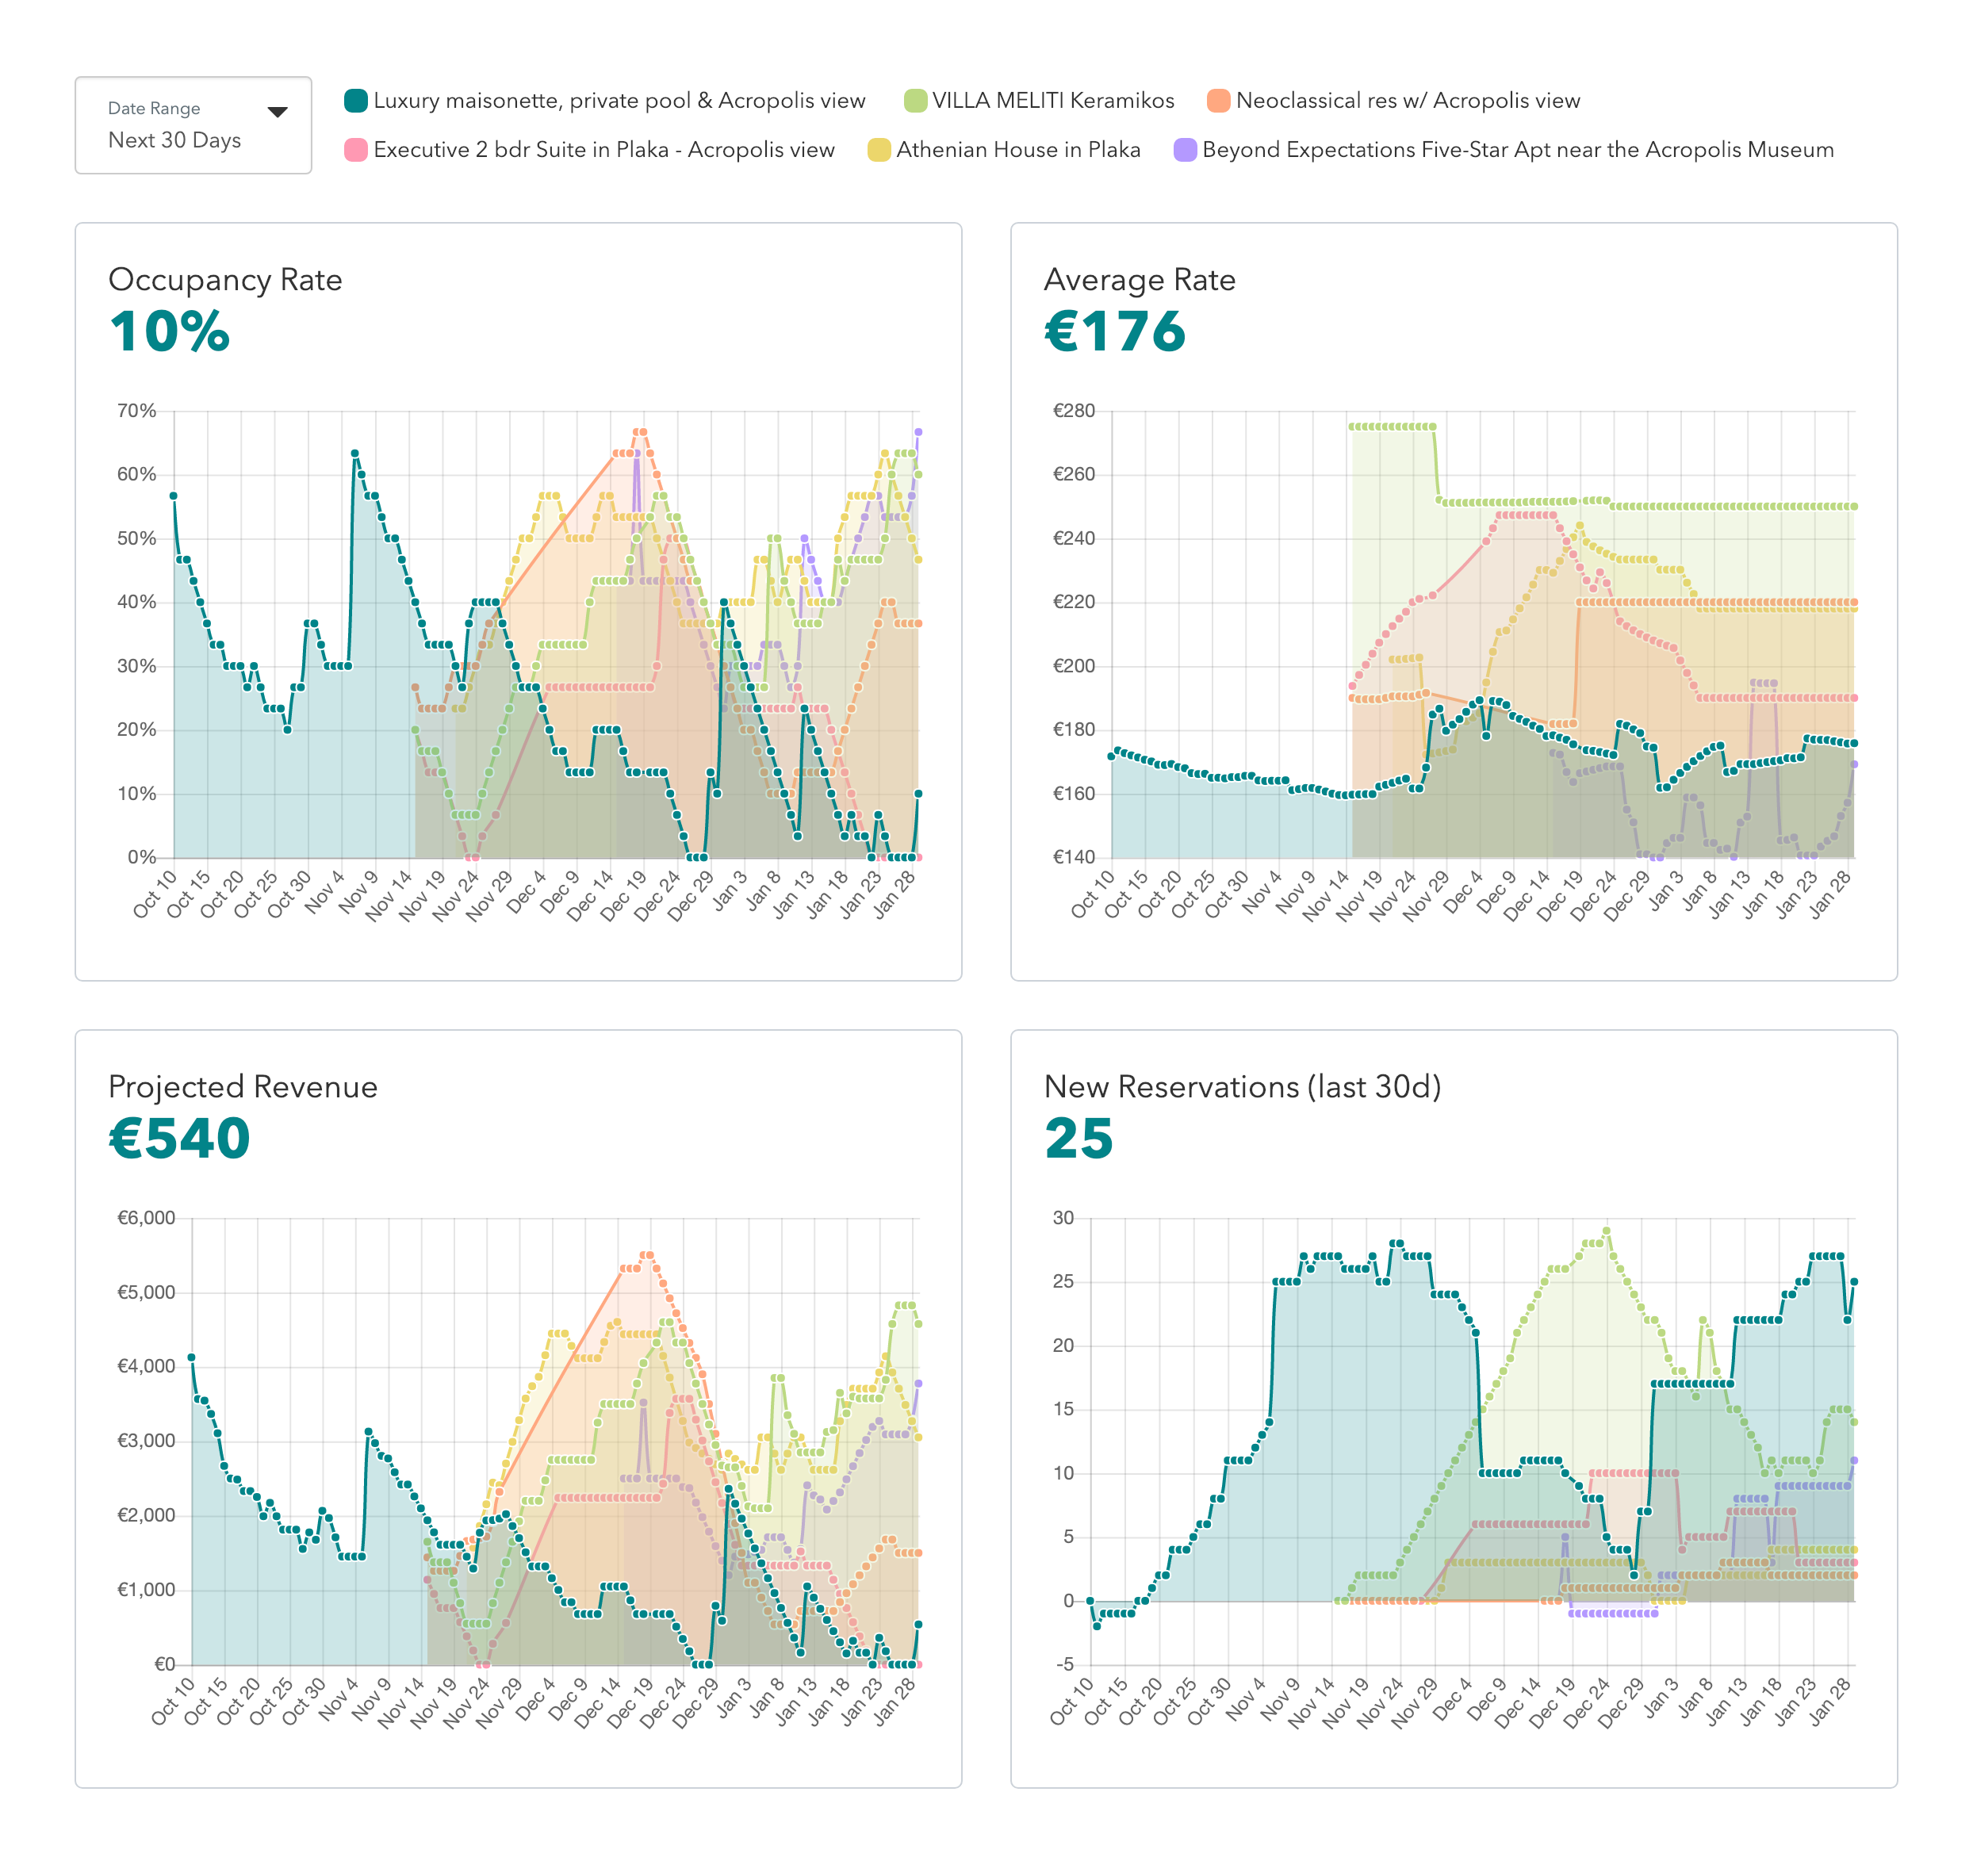 Easily monitor your properties' performance - Keep tabs on how your property is doing against the competition by tracking:- Occupancy rates- Average nightly rates- New reservations- Projected revenueMonitor your property stats for the next 30, 60, or 90 days leveraging the data to:- Secure more advanced reservations- Get more bookings than the competition- Optimize your nightly rates